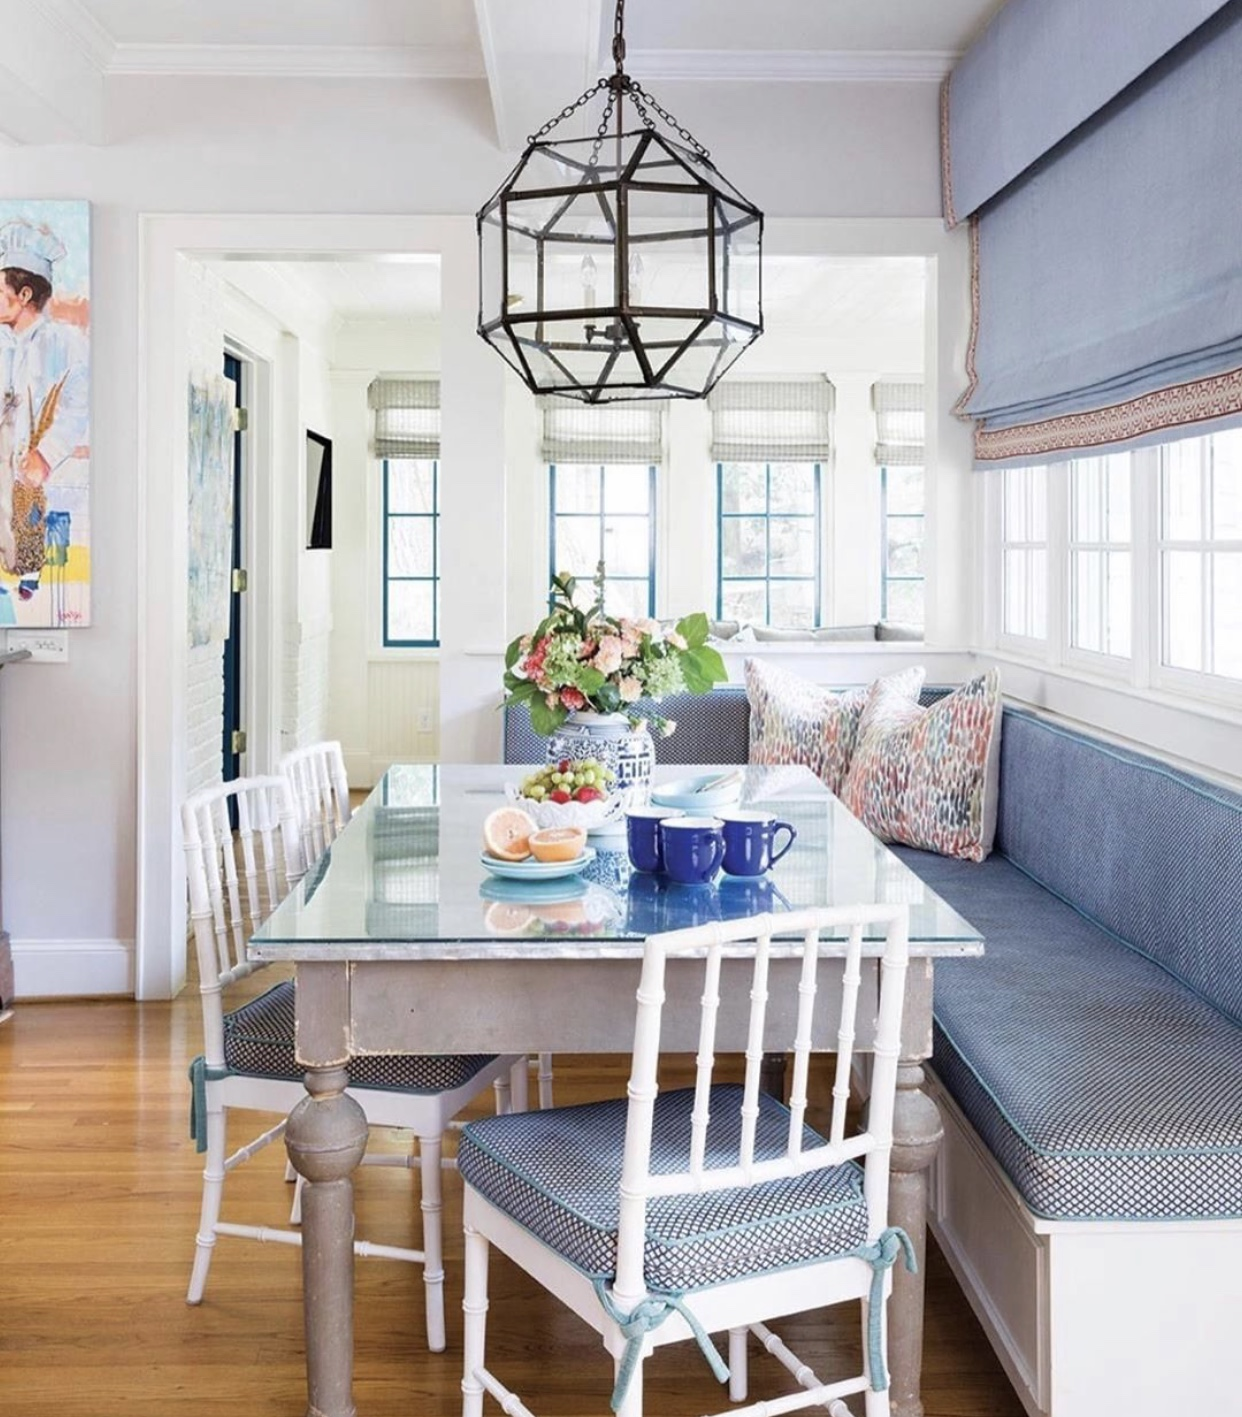 Interiors by  Whitney Durham . Photography by  Laura Negri Photography .